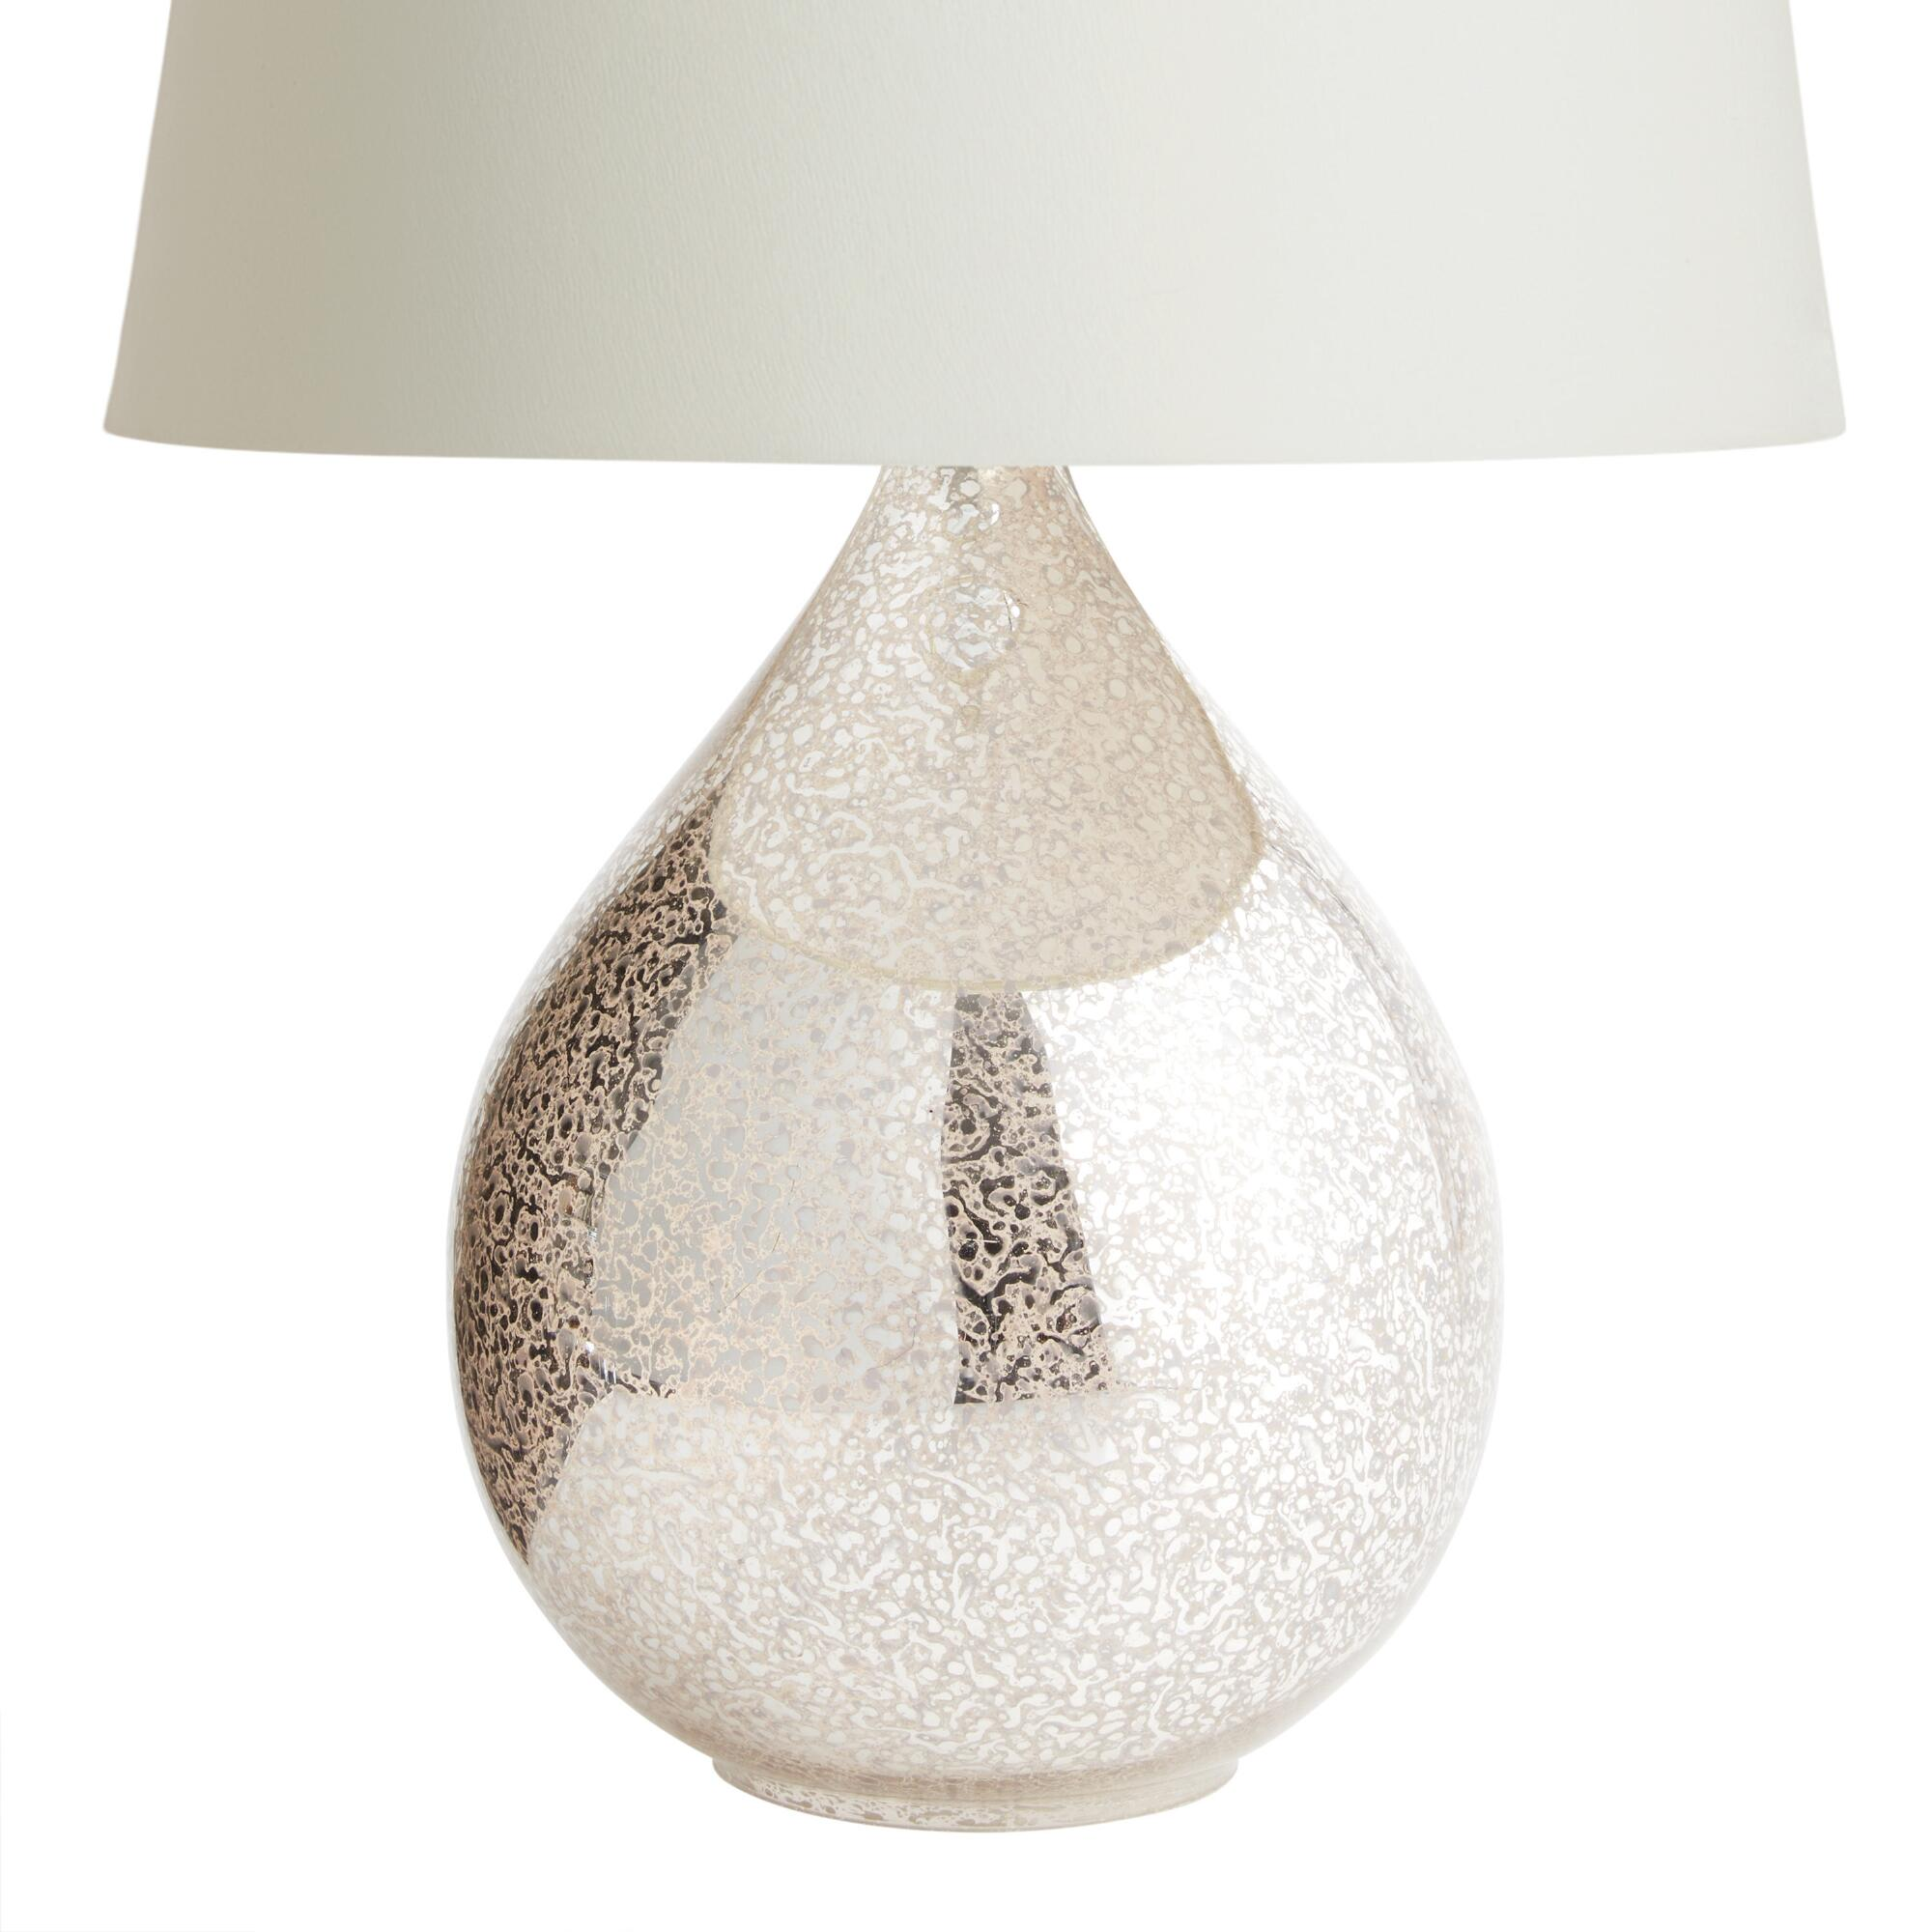 Cost plus world market martina aged mirror table lamp base for Lighting plus online